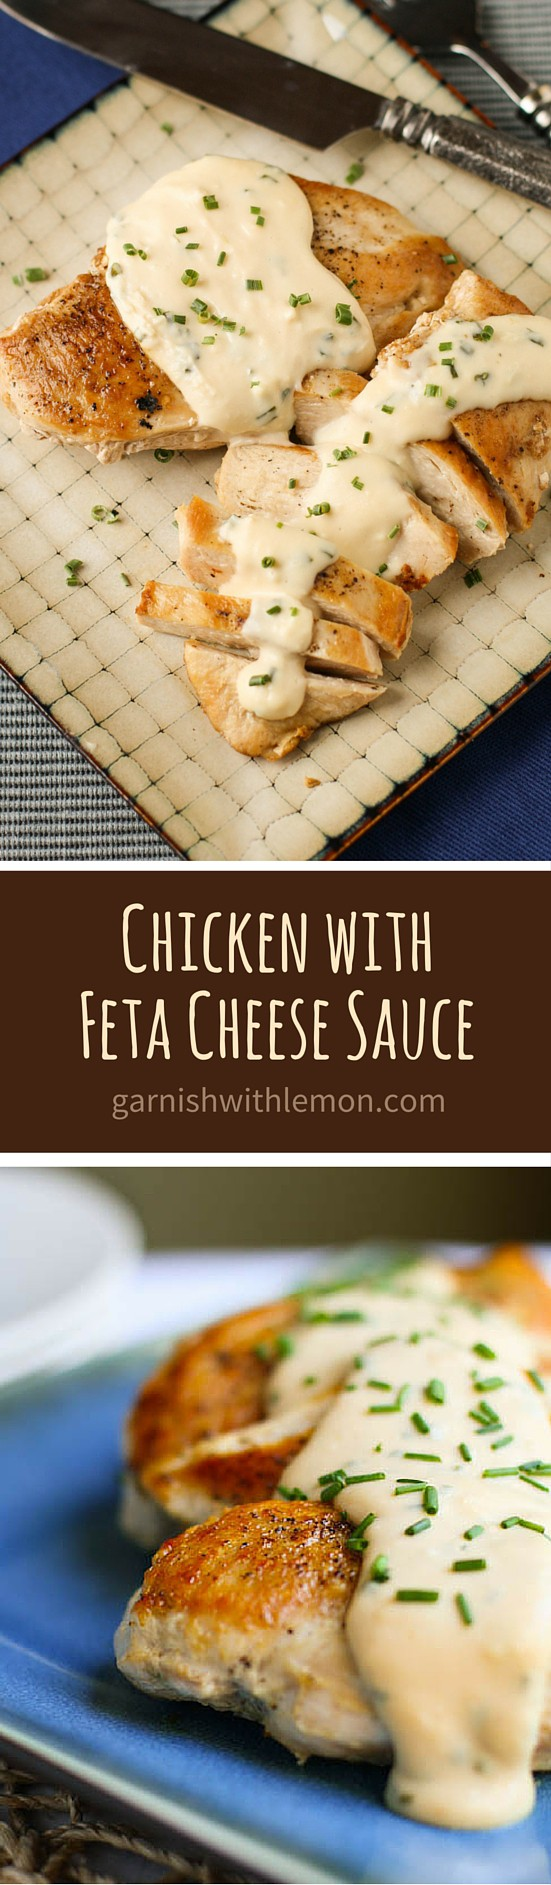 Do not miss our family's favorite easy dinner recipe - Chicken with Feta Cheese Sauce!